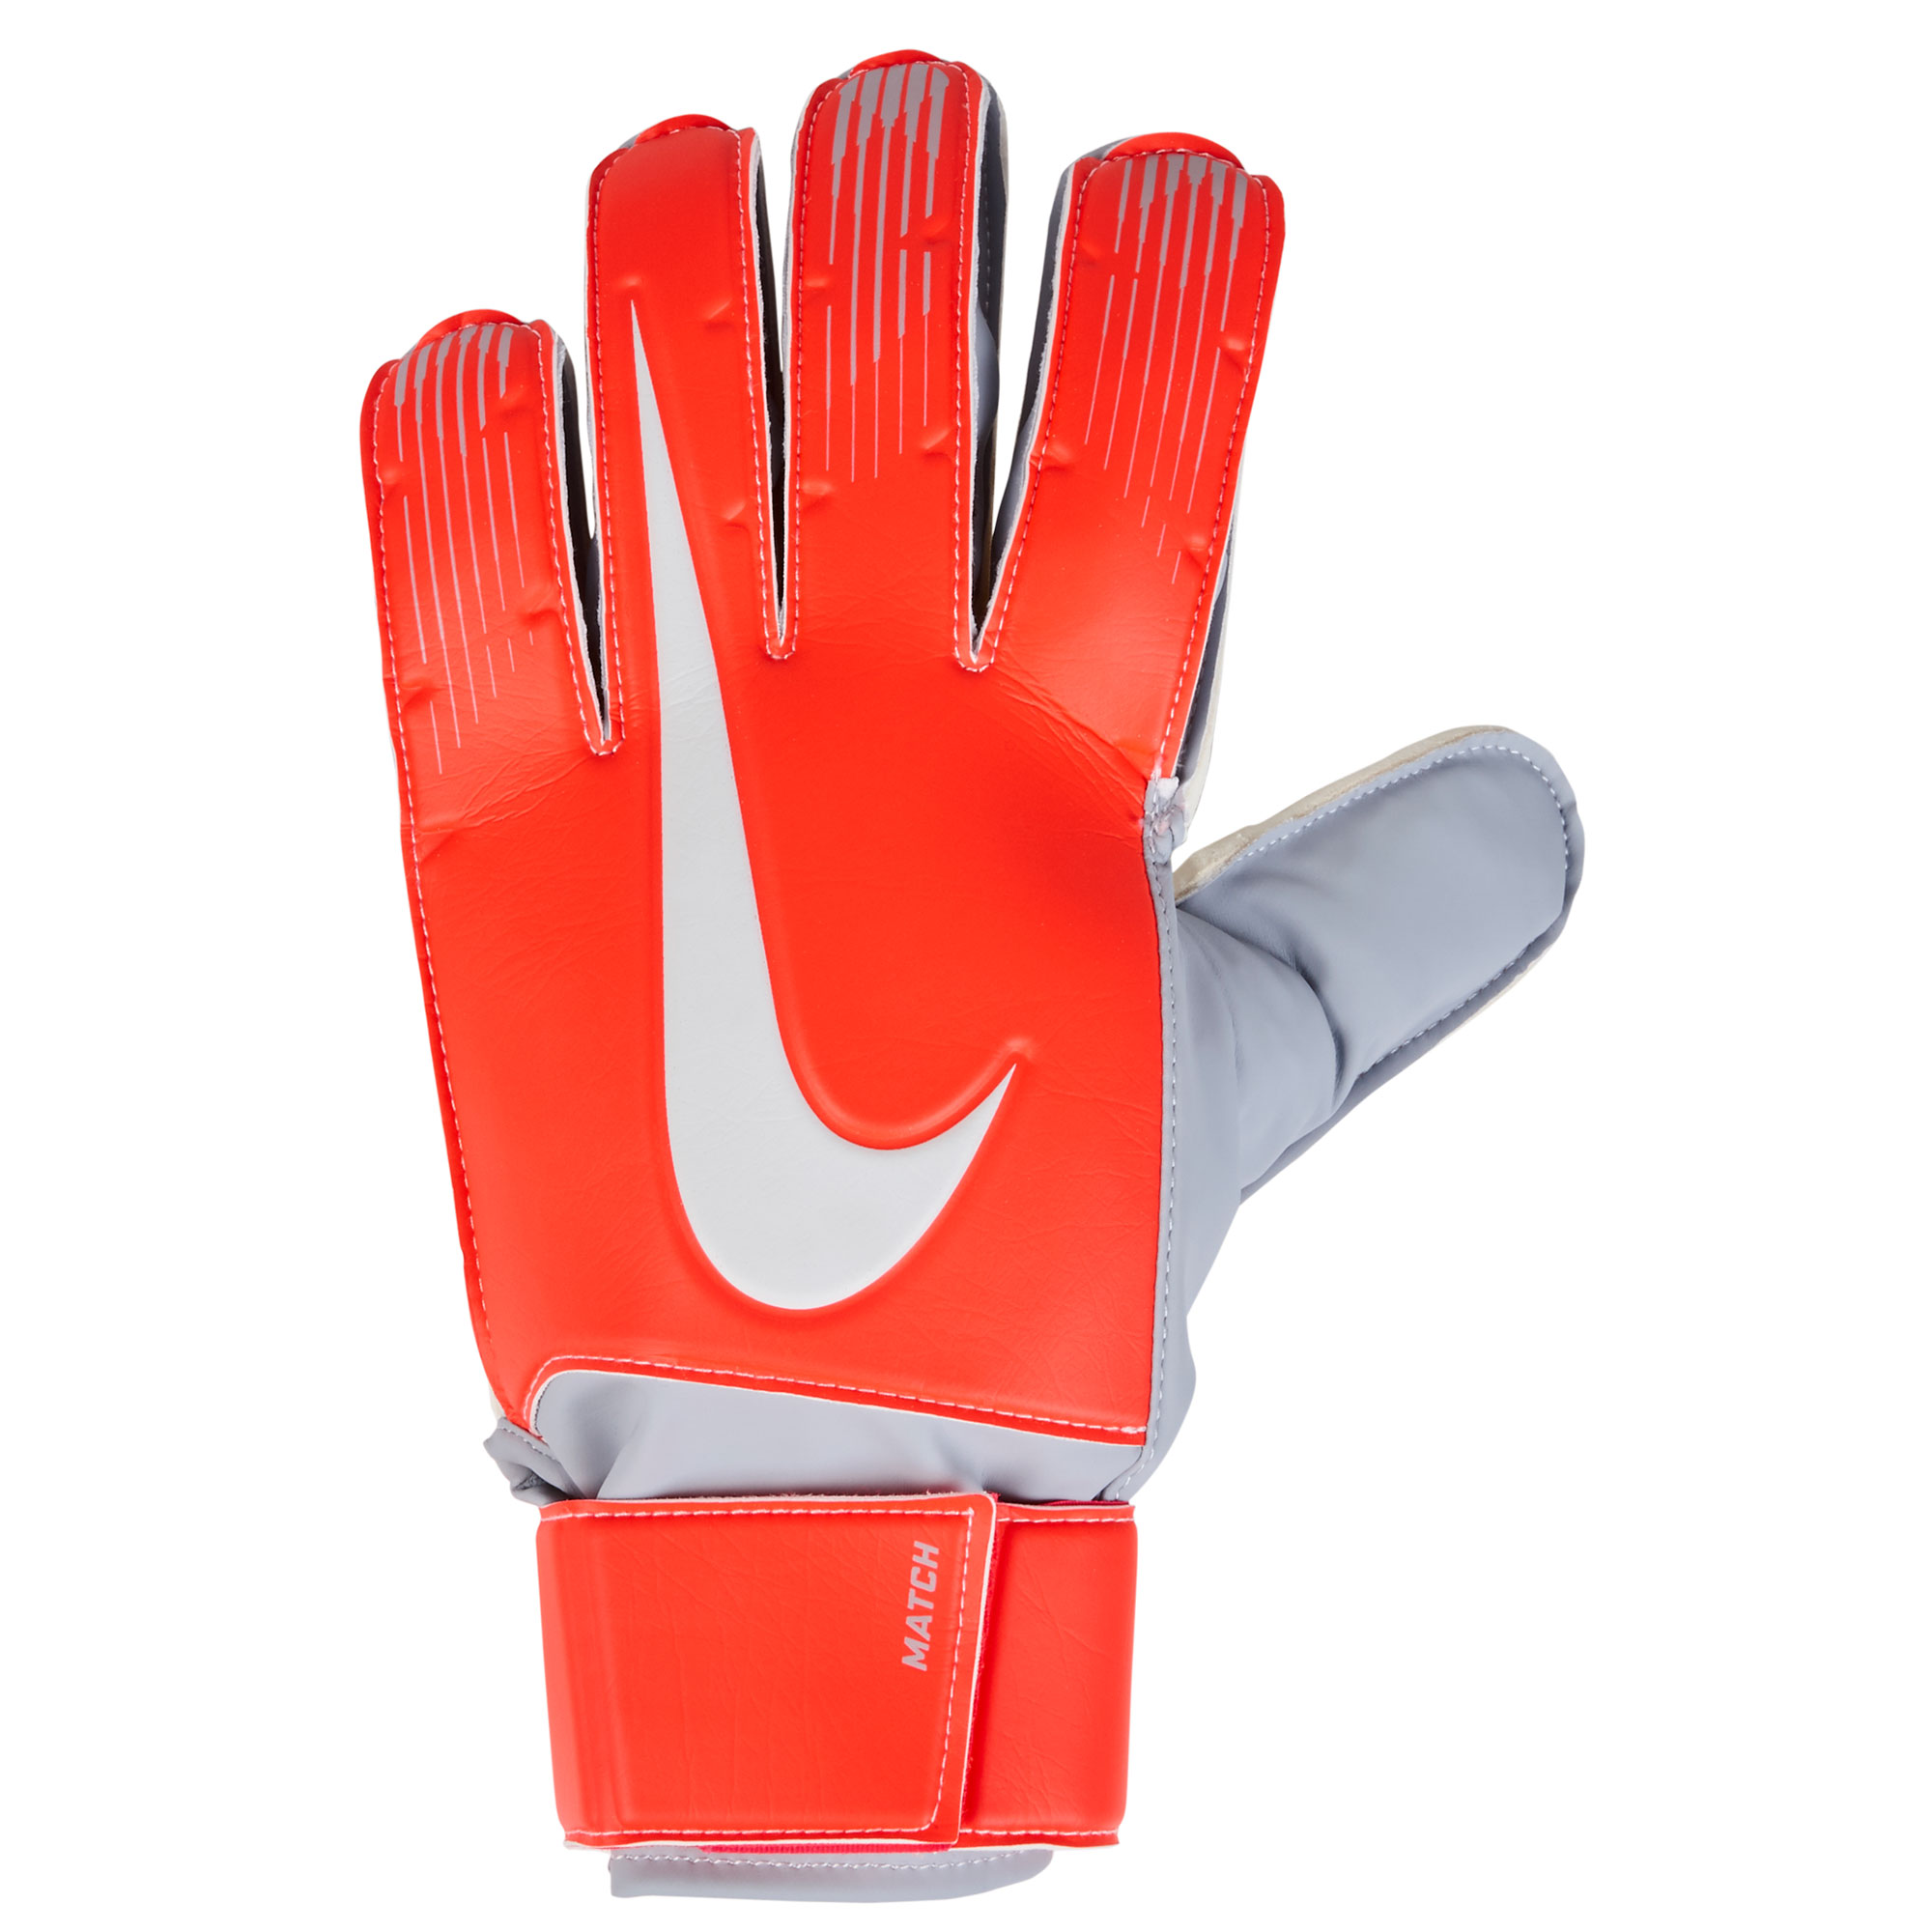 Nike Match Goalkeeper Gloves - Red